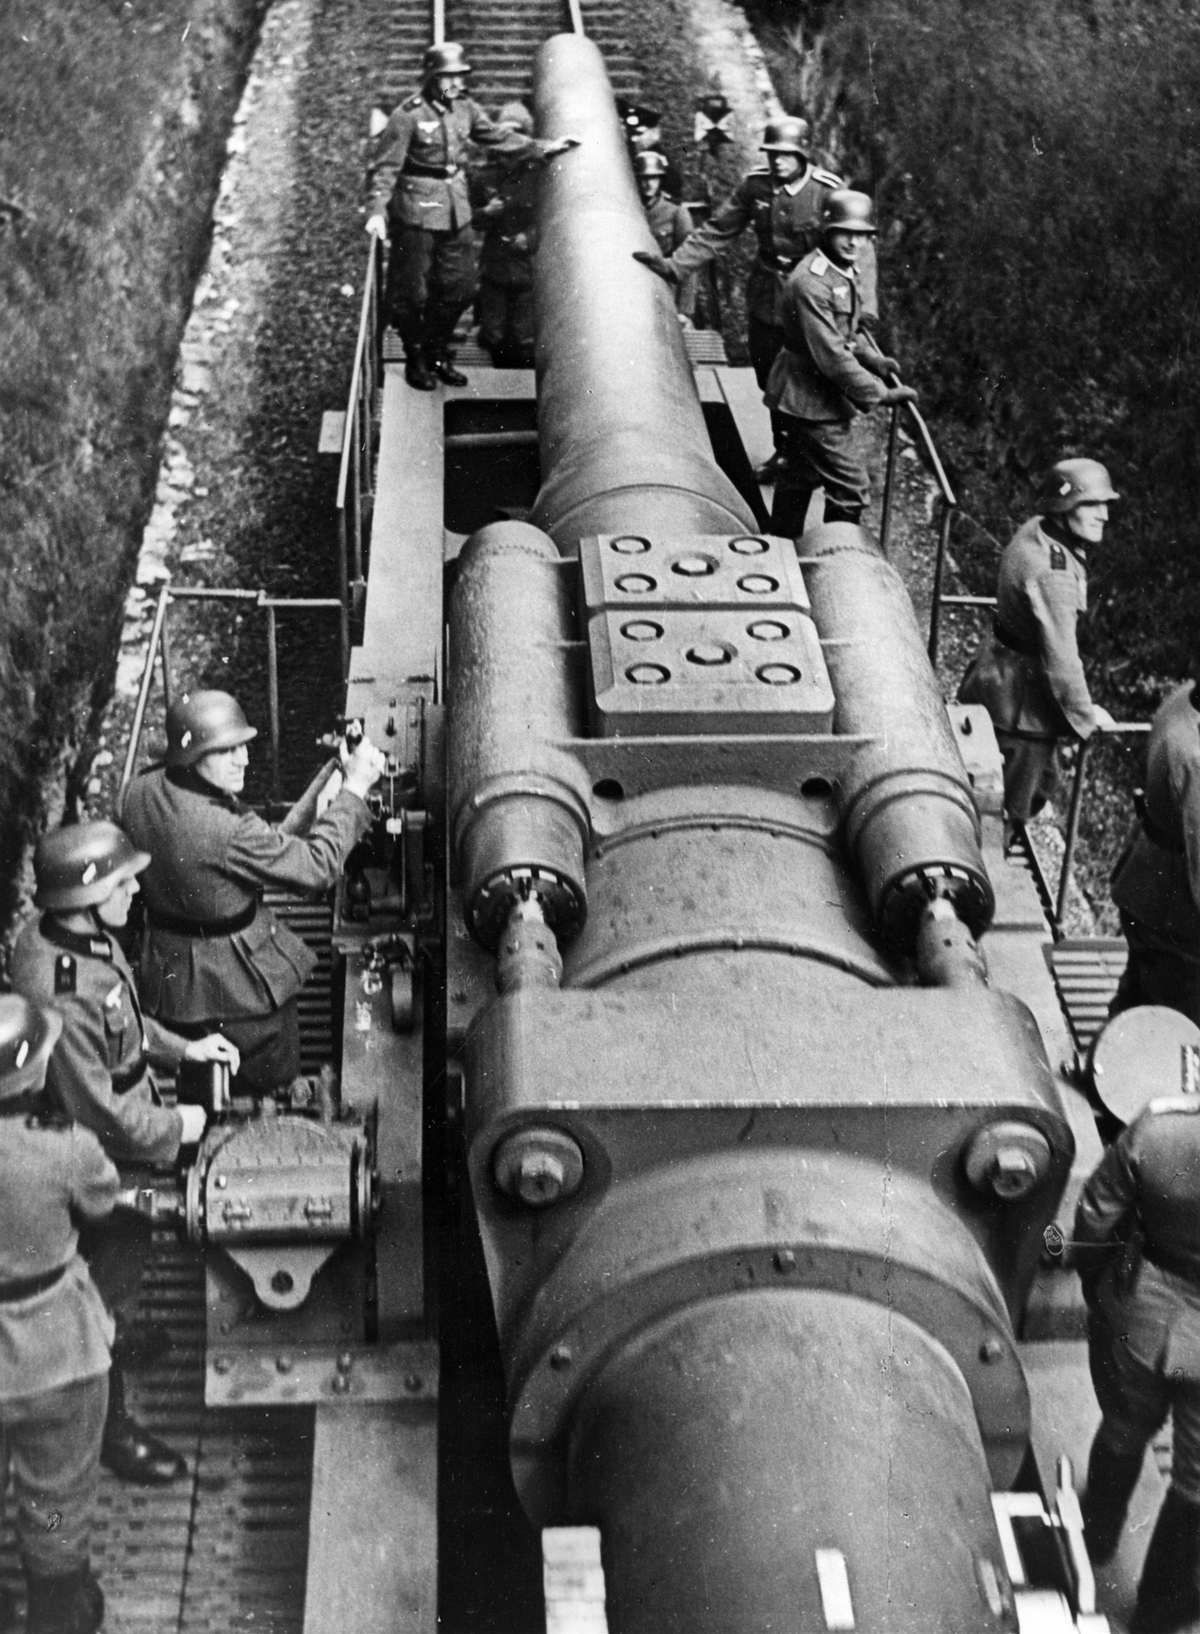 """The German 280mm railway gun of the """"Bruno"""" series en route to the front, invasion of Poland, 1939."""